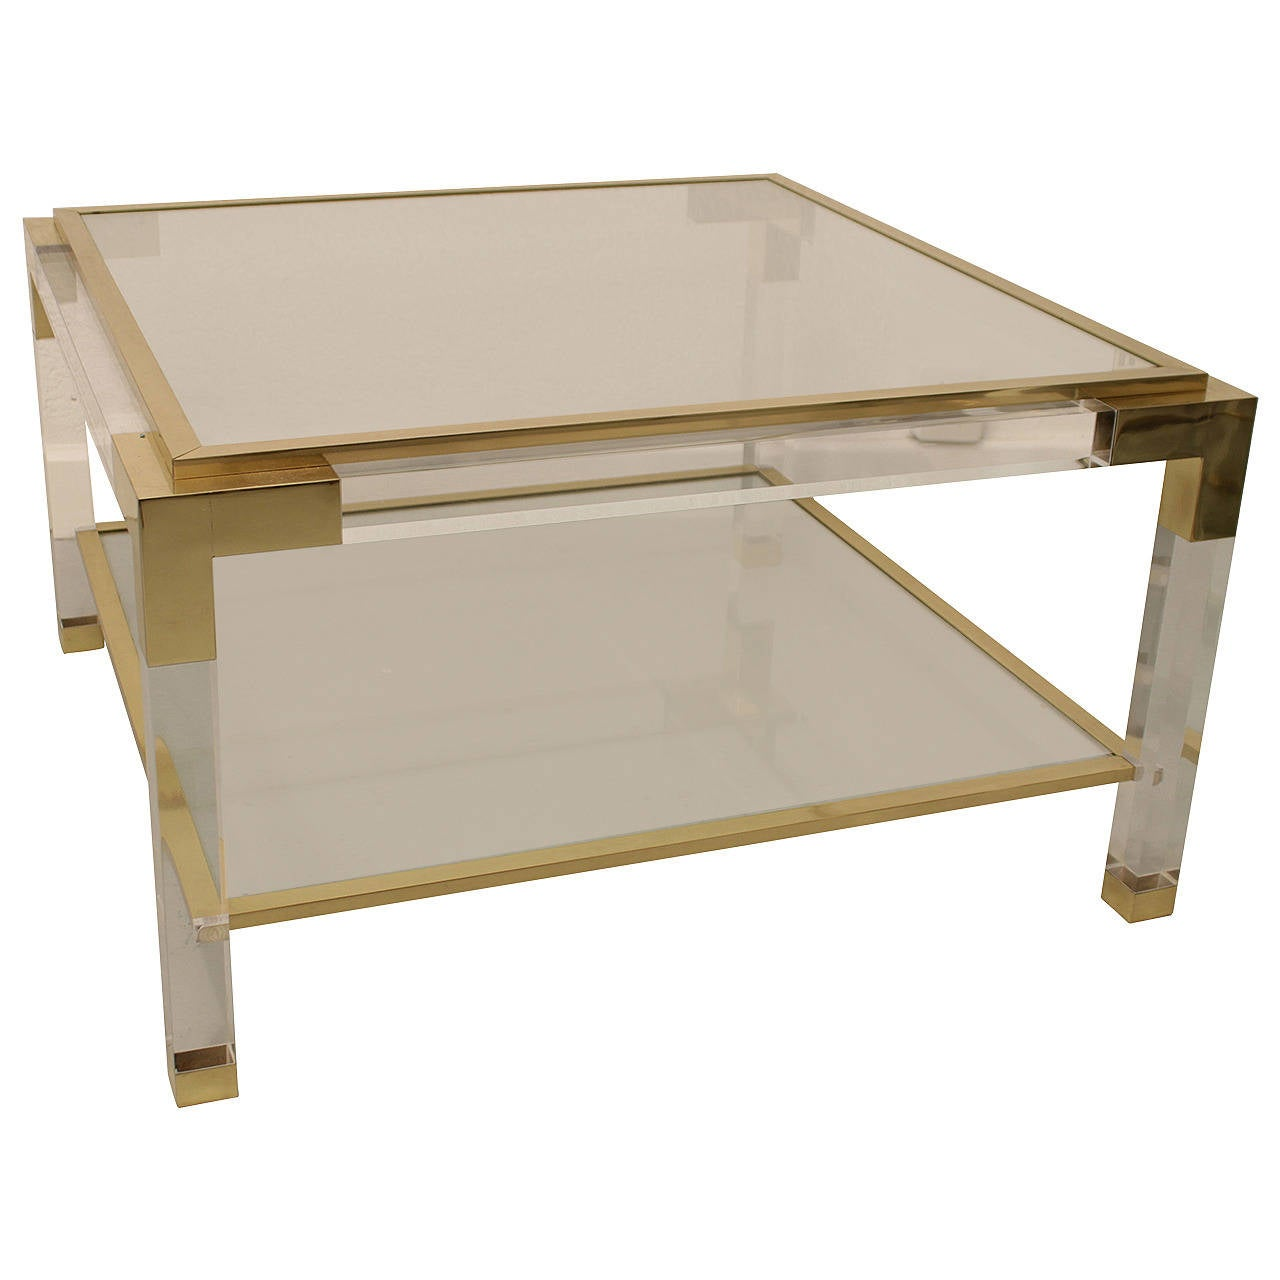 Vintage lucite brass and glass coffee table for sale at for Lucite and brass coffee table